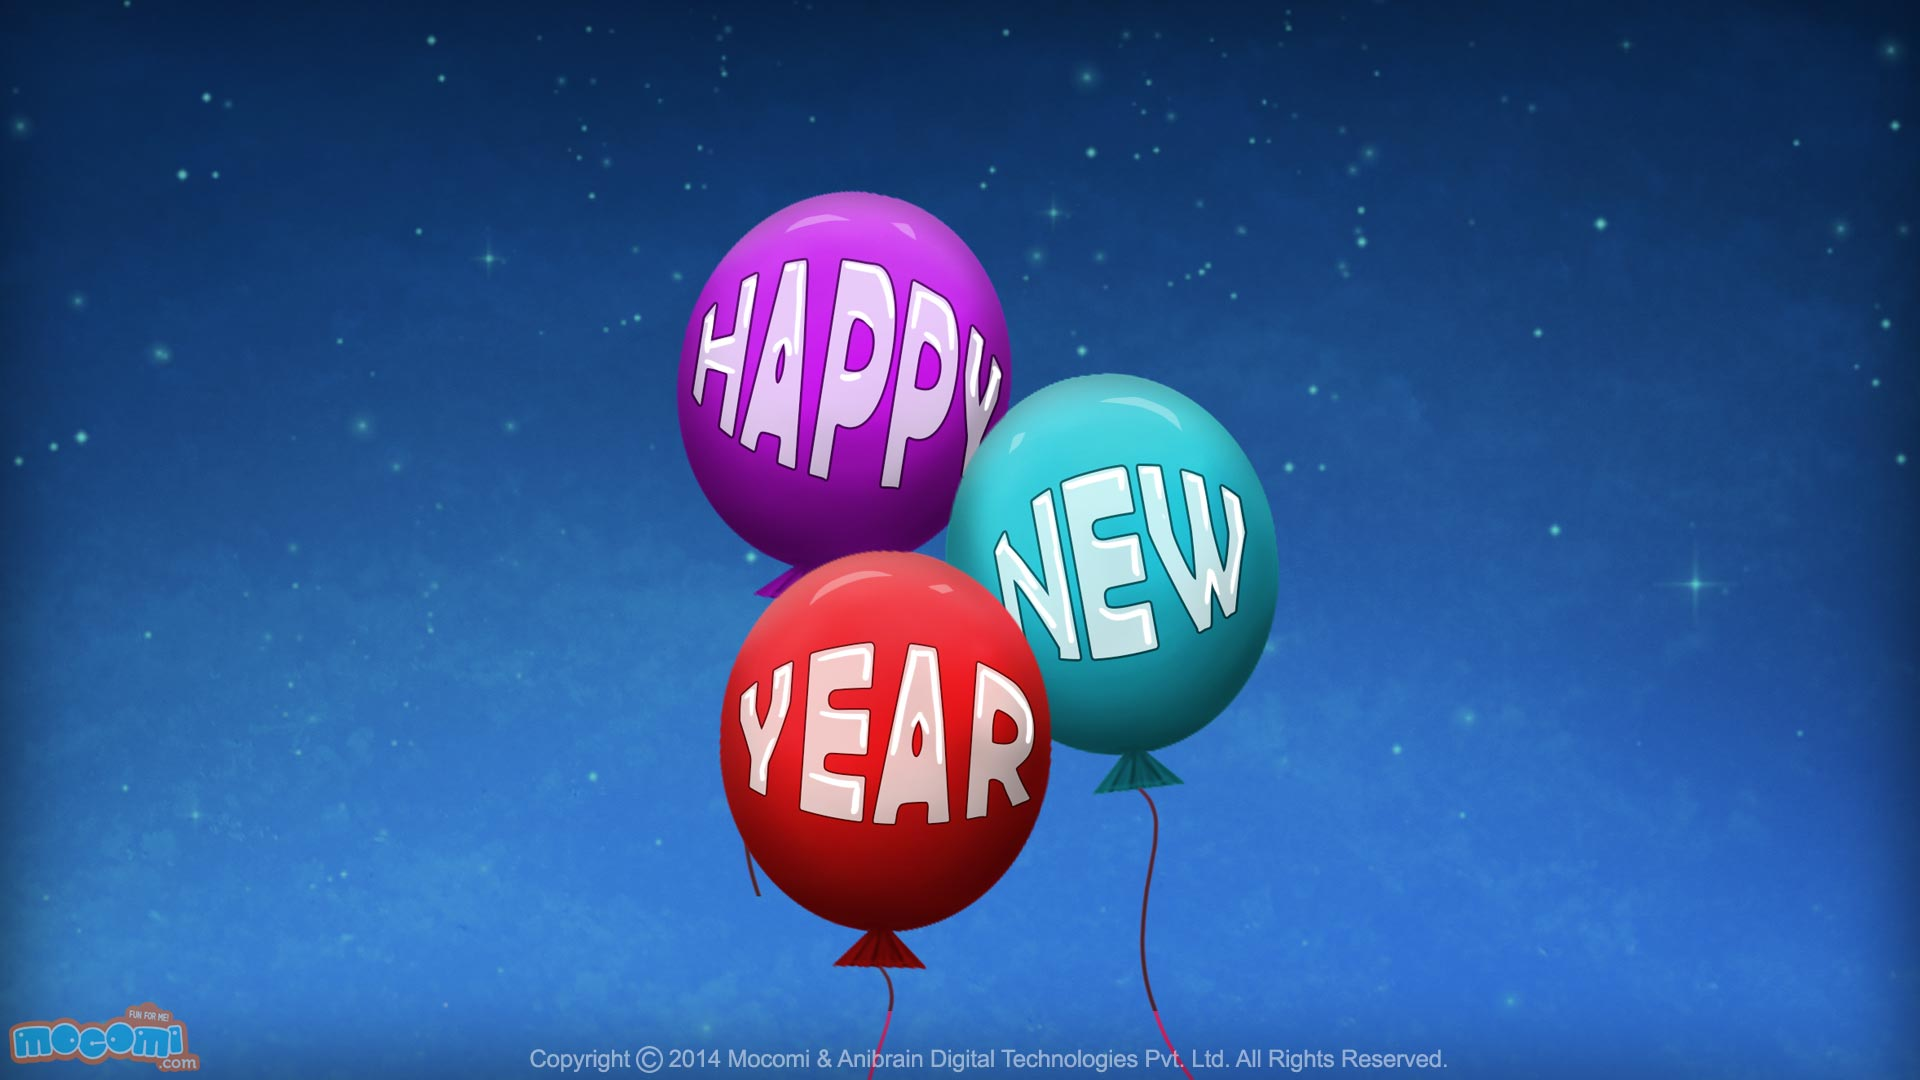 happy new year wallpaper 4